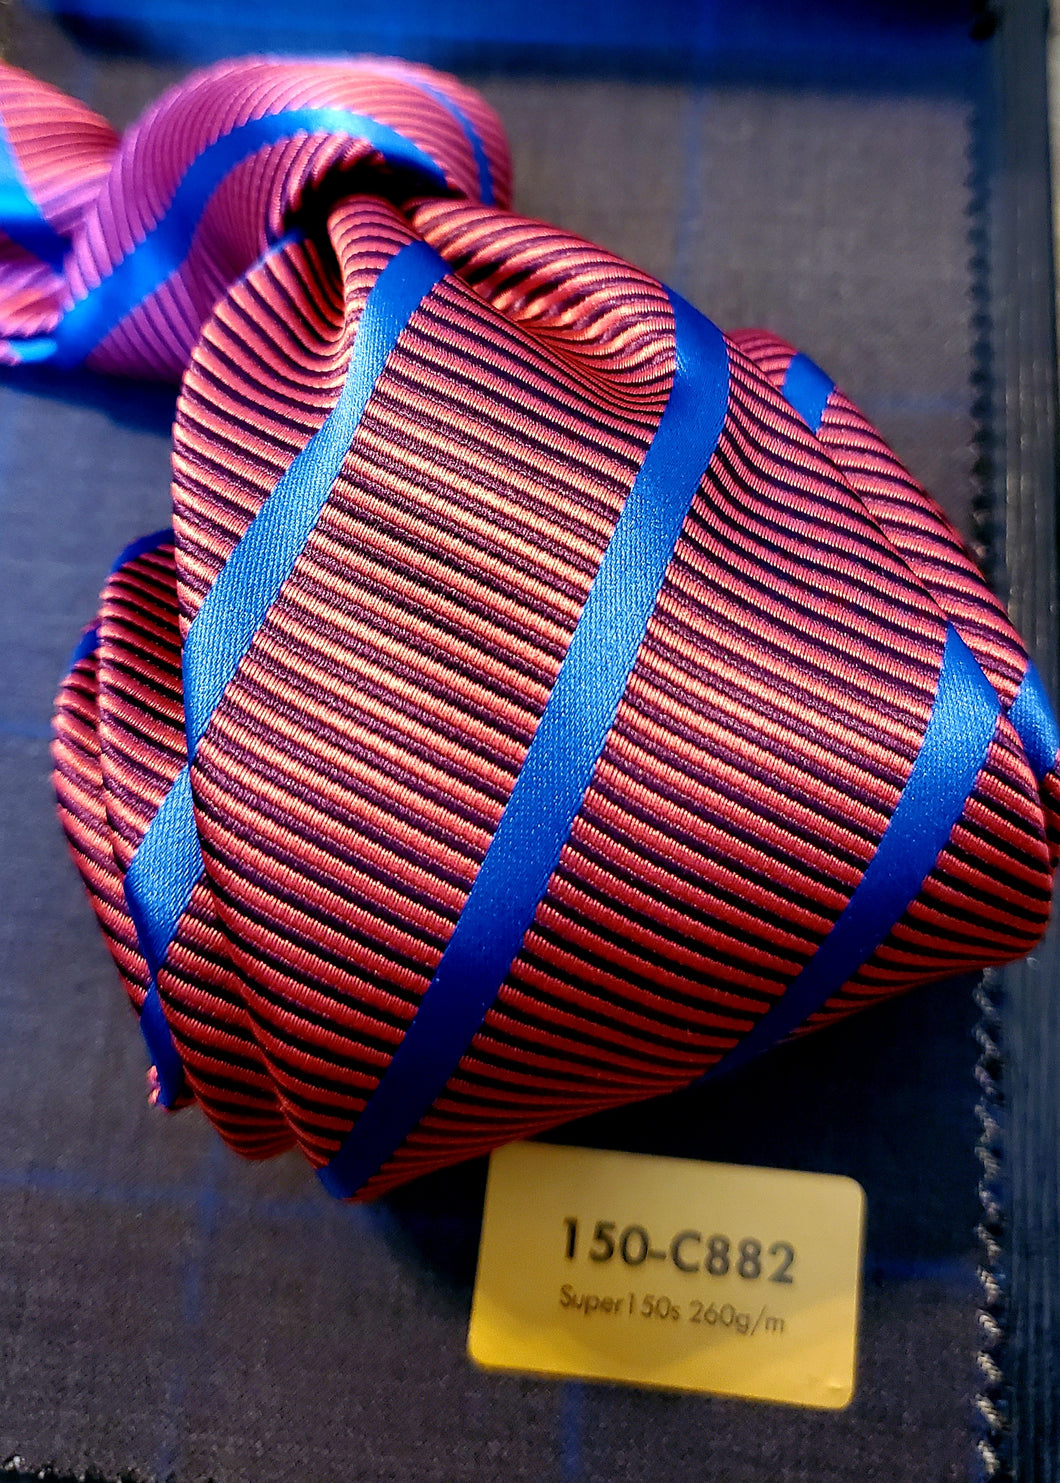 Vivid Stripes - French Thread